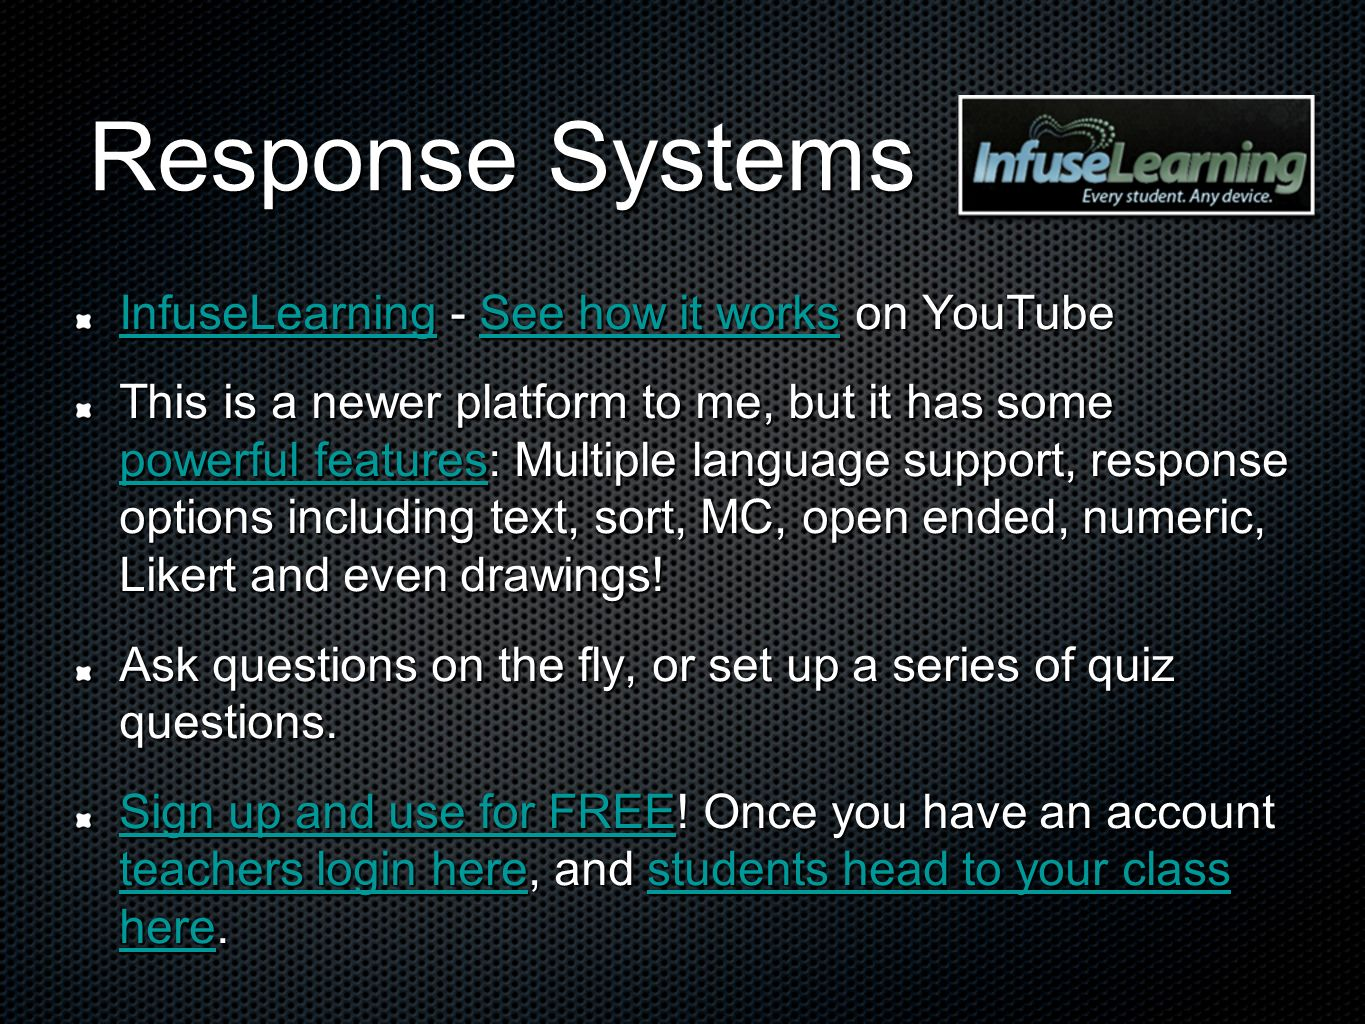 Response Systems InfuseLearning - See how it works on YouTube